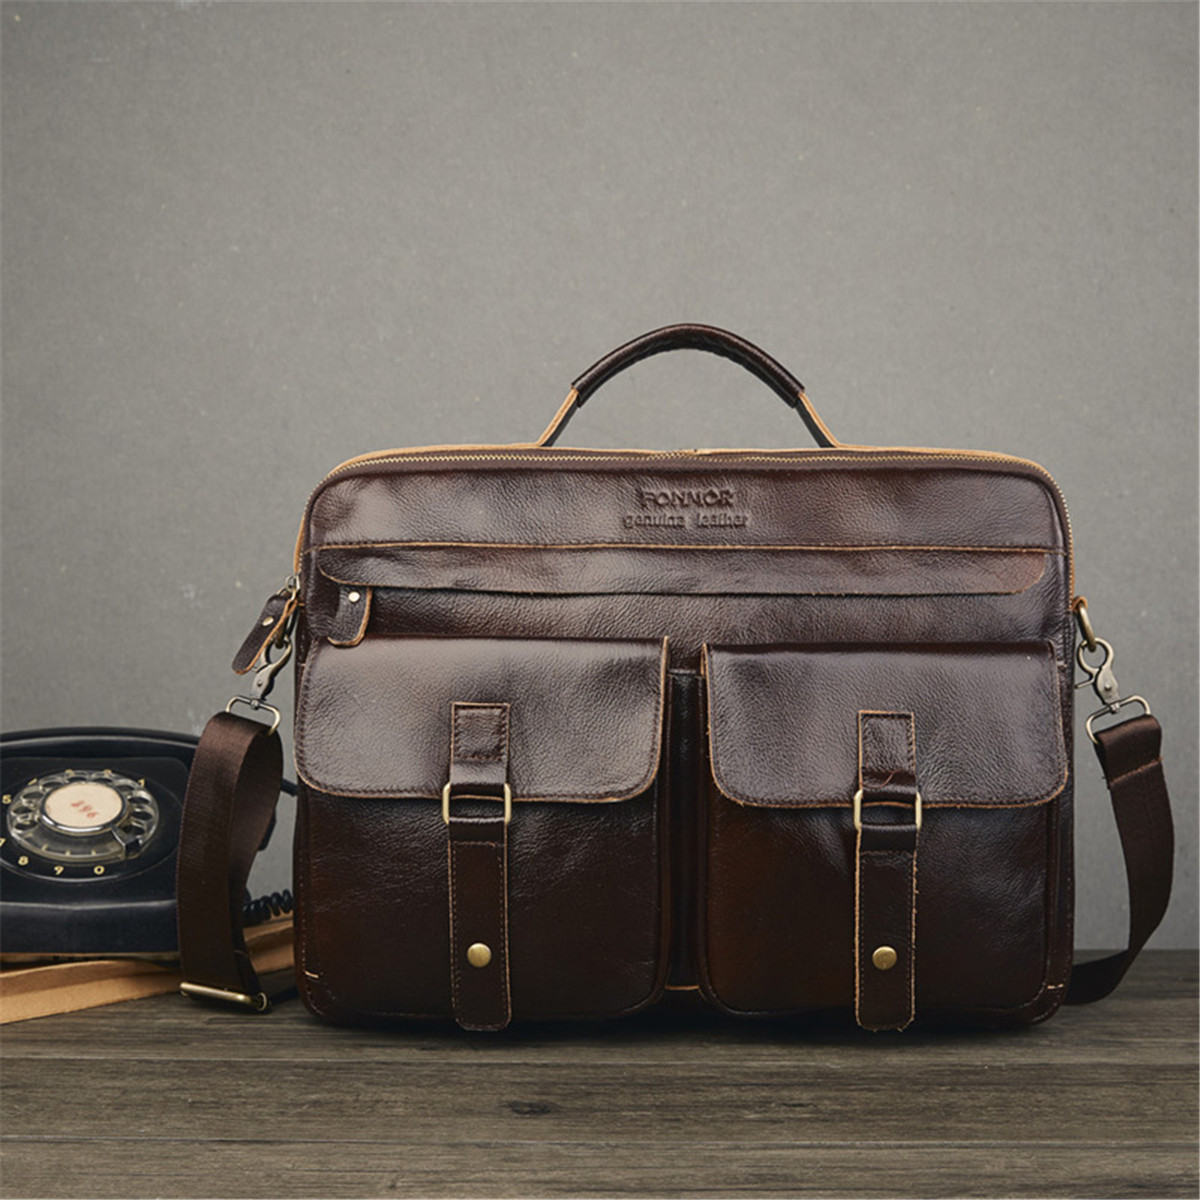 100% Top Layer Cowhide Men Leather Briefcase Business Handbag Messenger Bags Male Vintage Shoulder Bag Men's Large Laptop Bags